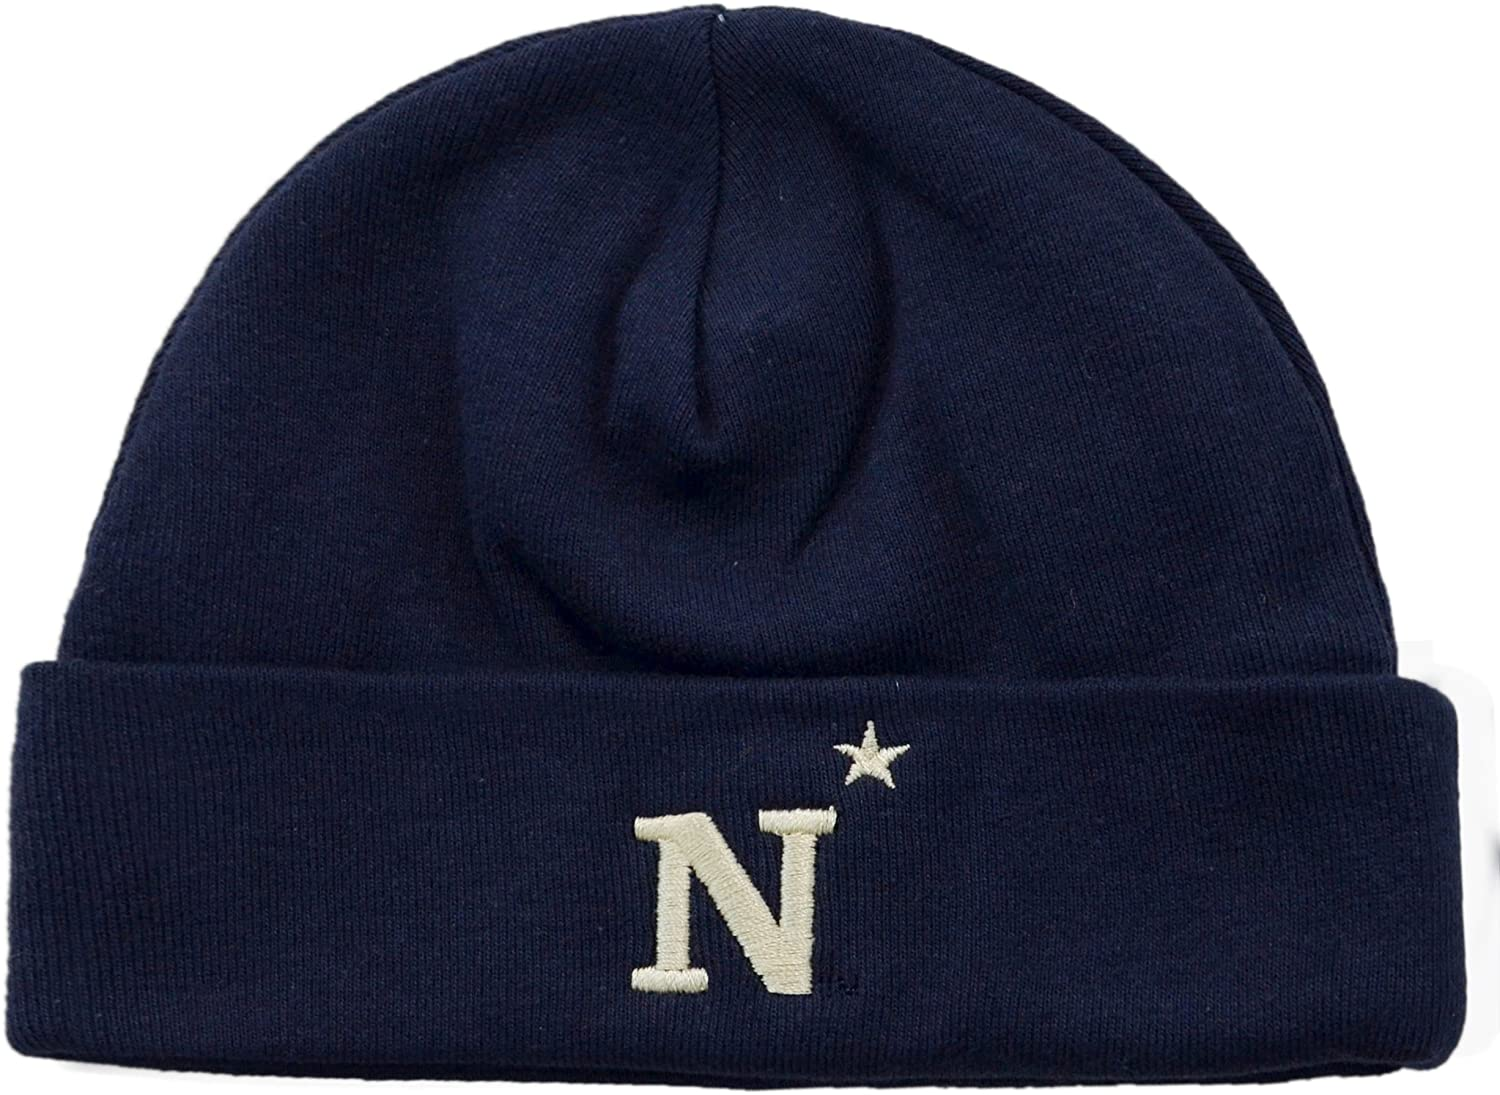 Top of the World Newborn Infant Cuffed Knit Team Icon Hat